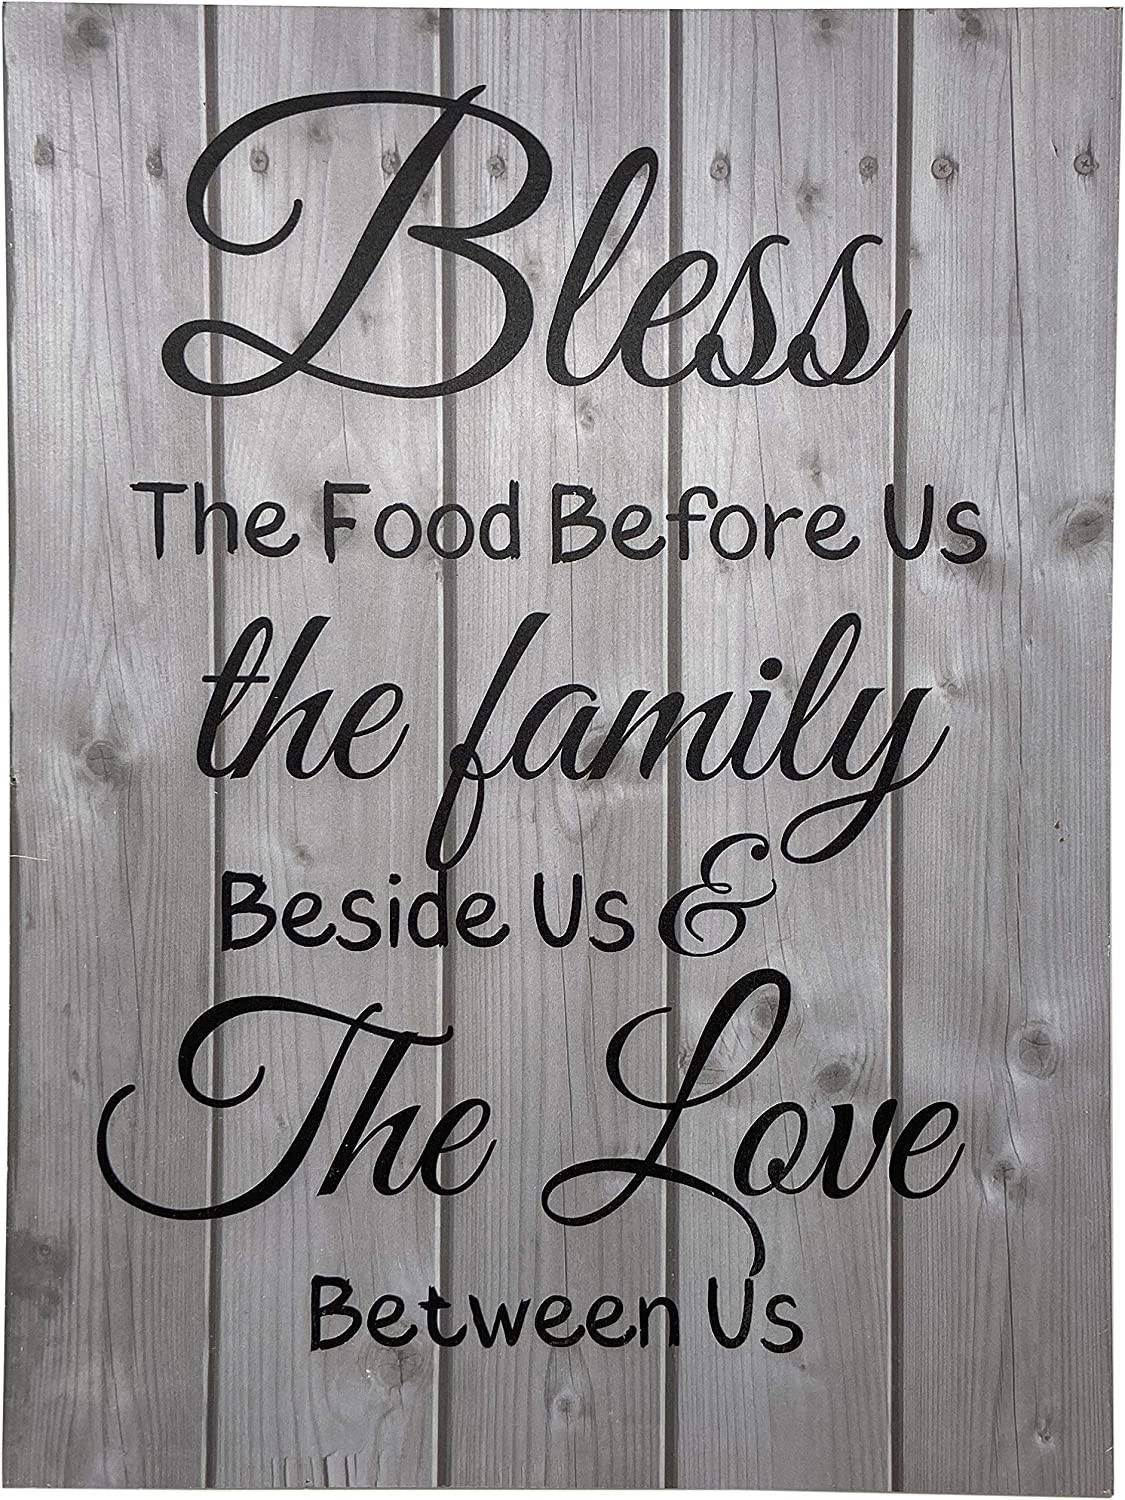 Bless The Food Before Us Vintage Wooden Rustic Farmhouse Wall Home Decor Sign For Kitchen, Living Room, Dining Room, Bedroom or Bathroom – Barnwood Color Decorative Wall Sign